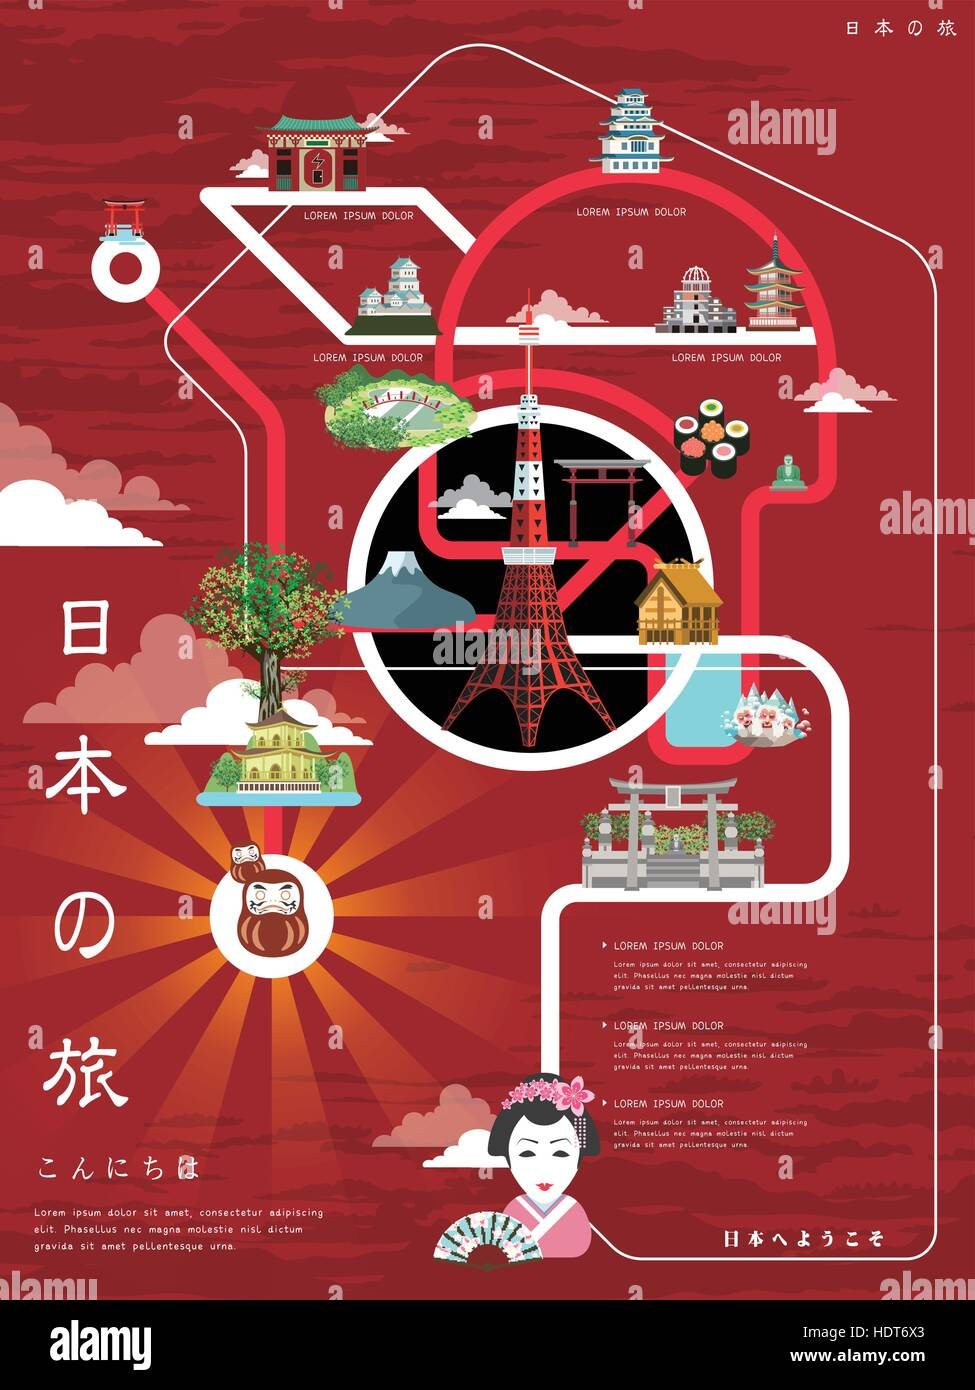 Poster design japan - Stock Vector Attractive Japan Travel Poster Design Japan Travel And Hello Welcome To Japan In Japanese Words